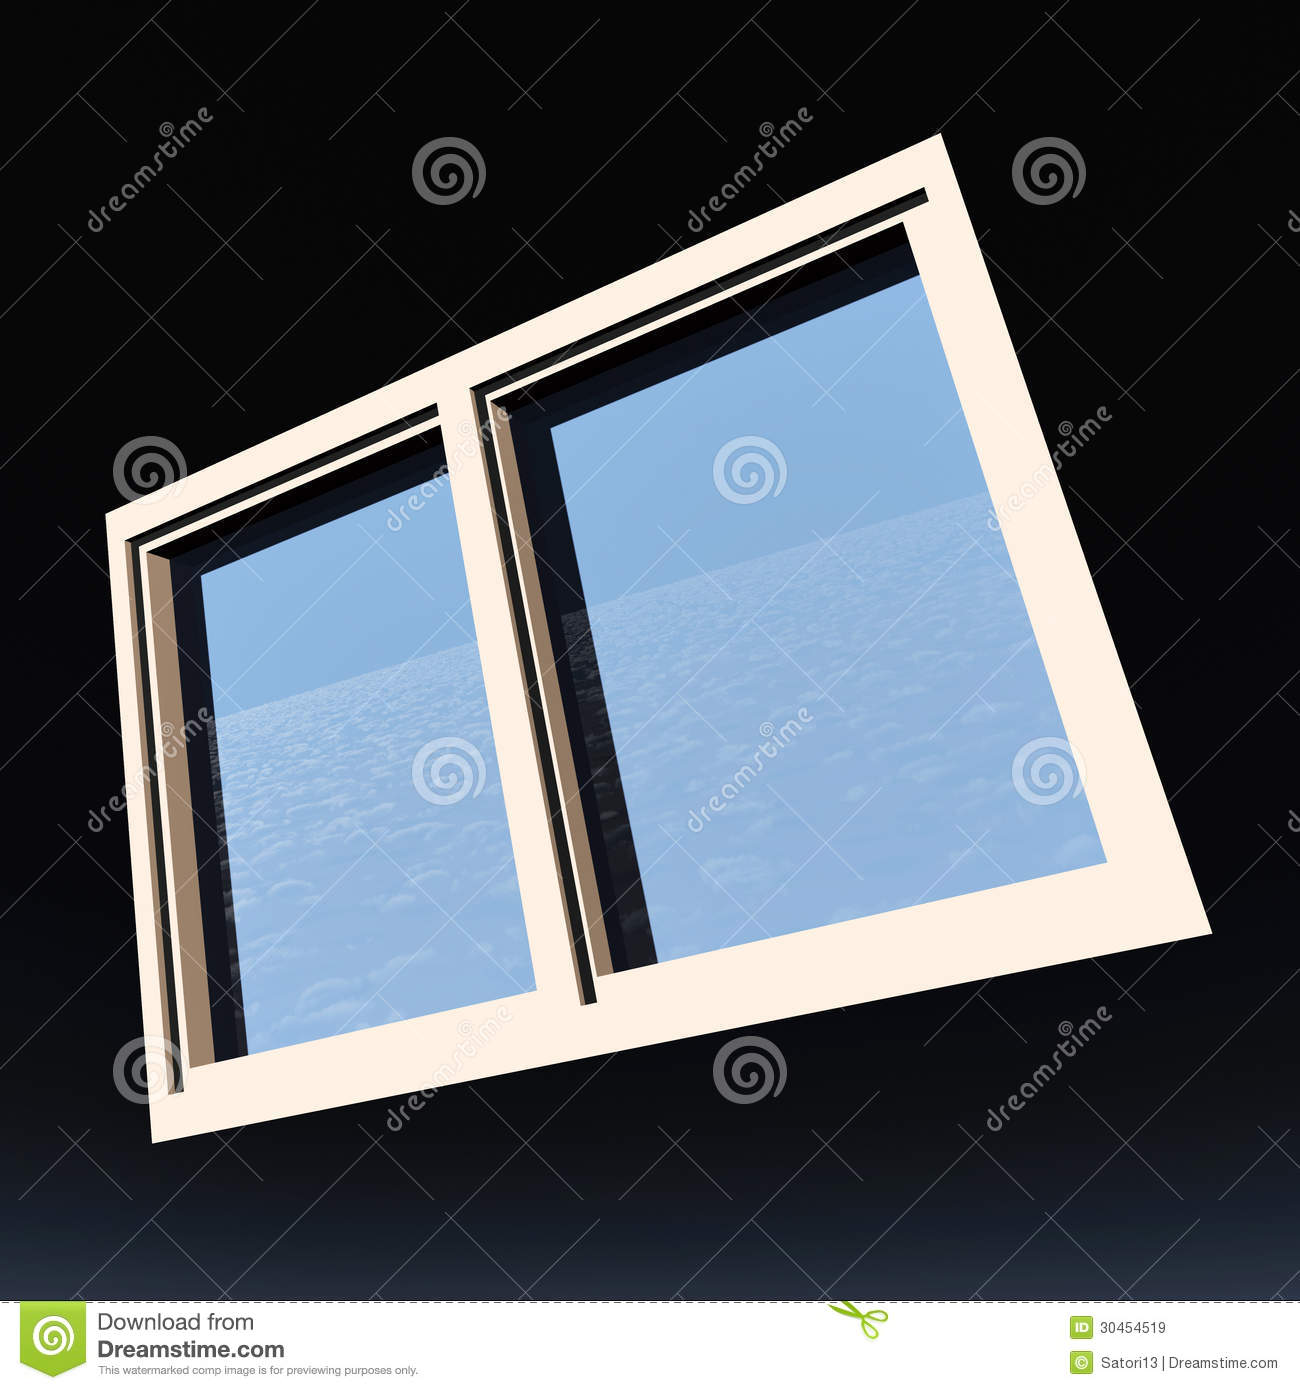 Window of opportunity royalty free stock images image for Window of opportunity